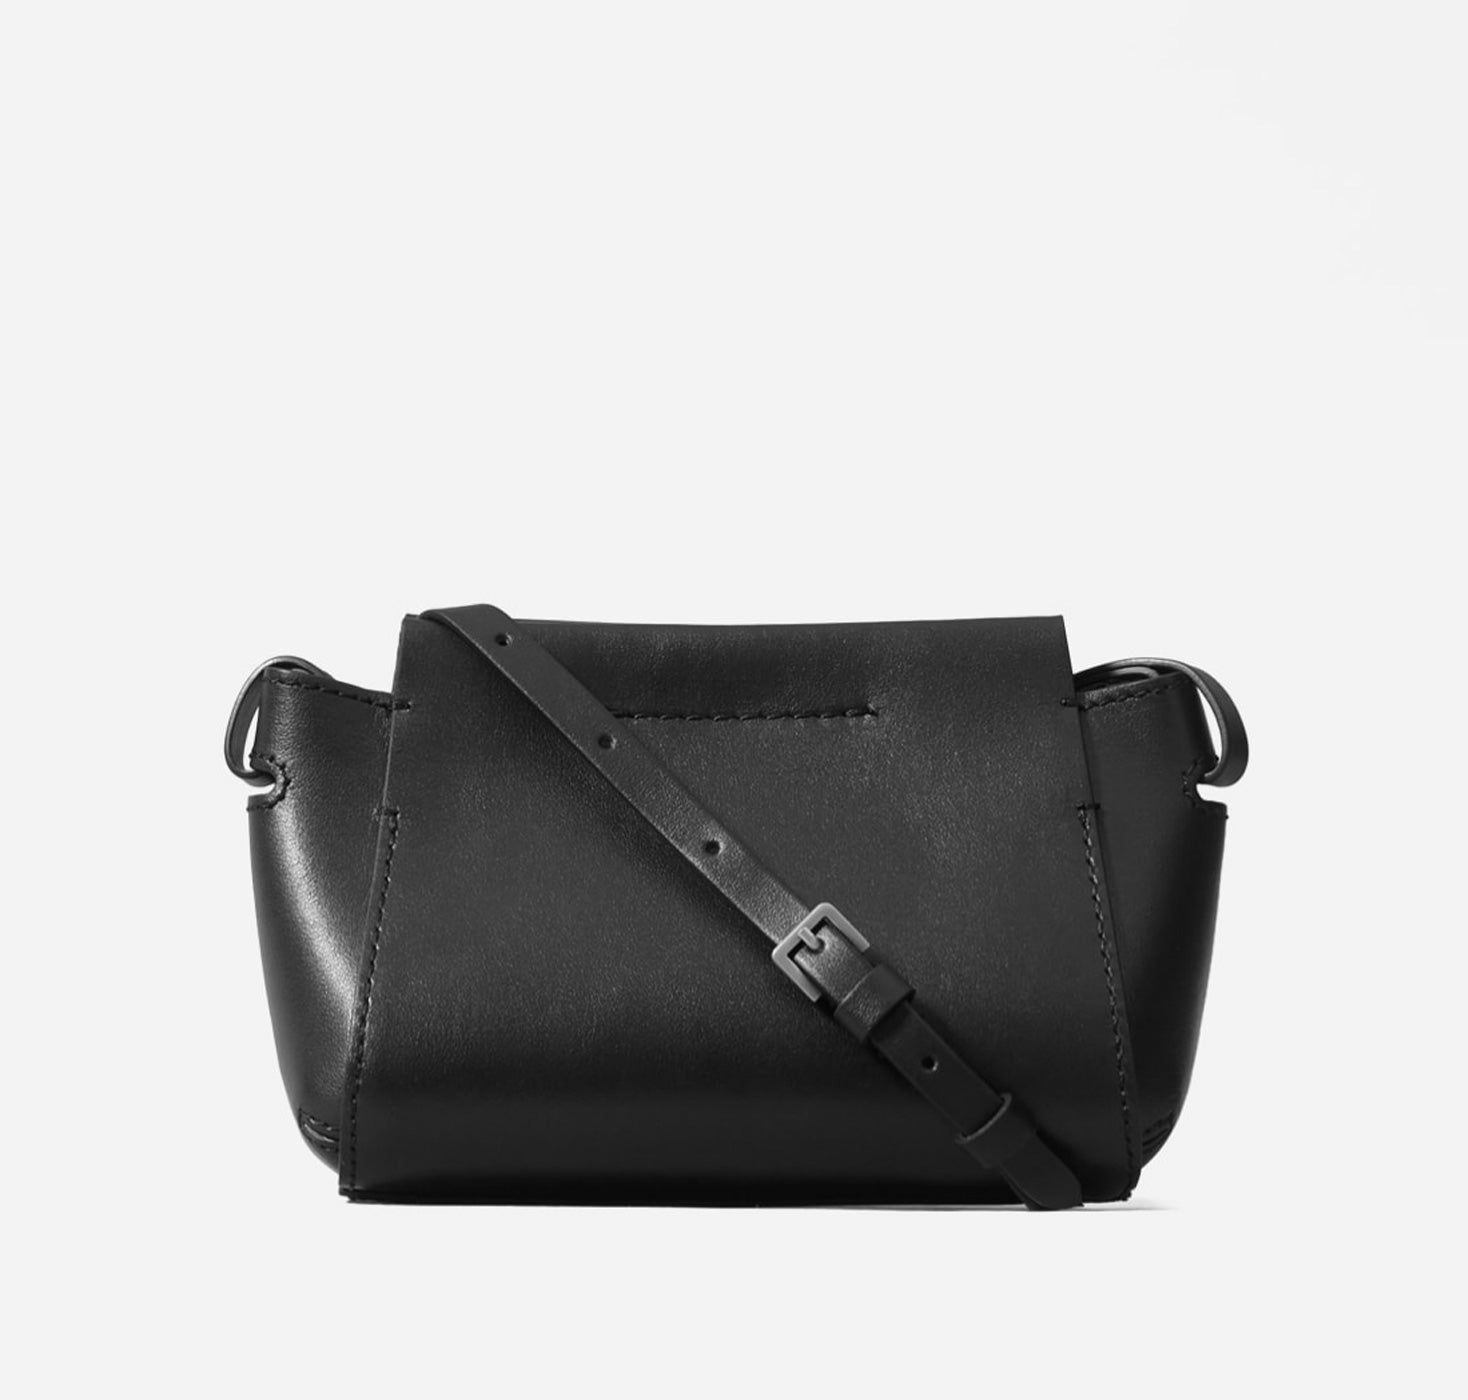 Everlane - 'The Micro Form Bag' - Black small leather cross-body bag